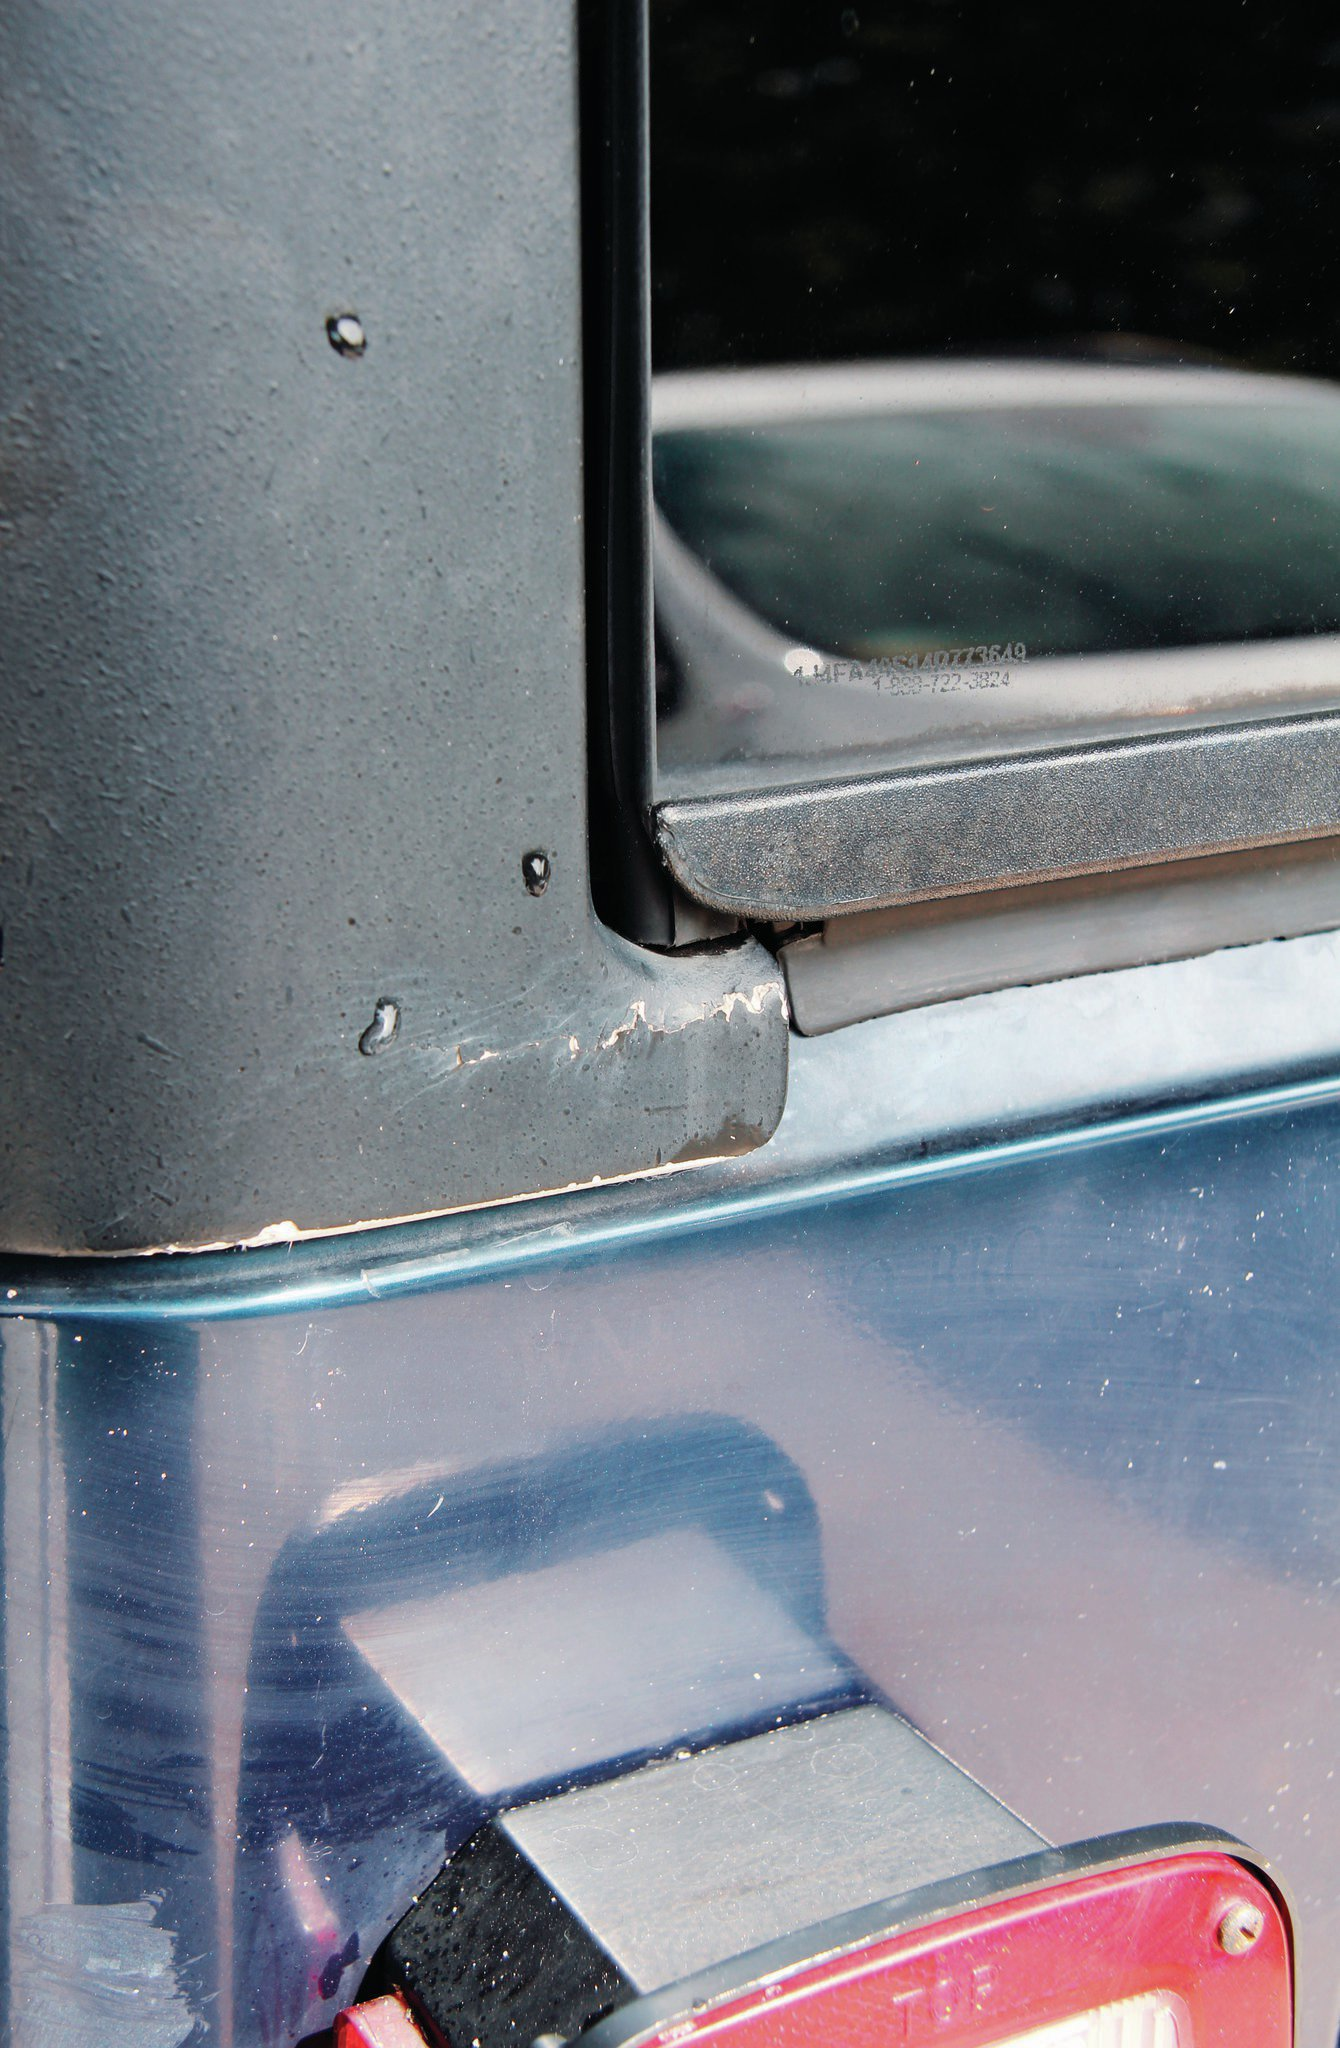 People love their hardtops and will ask a premium if their Jeep has one. If the Jeep has been wheeled with the hardtop on, look closely for cracks. The type of damage shown here can even occur from storing it improperly. Soft tops are relatively cheap and easy to get, so don't let one in bad shape deter you.